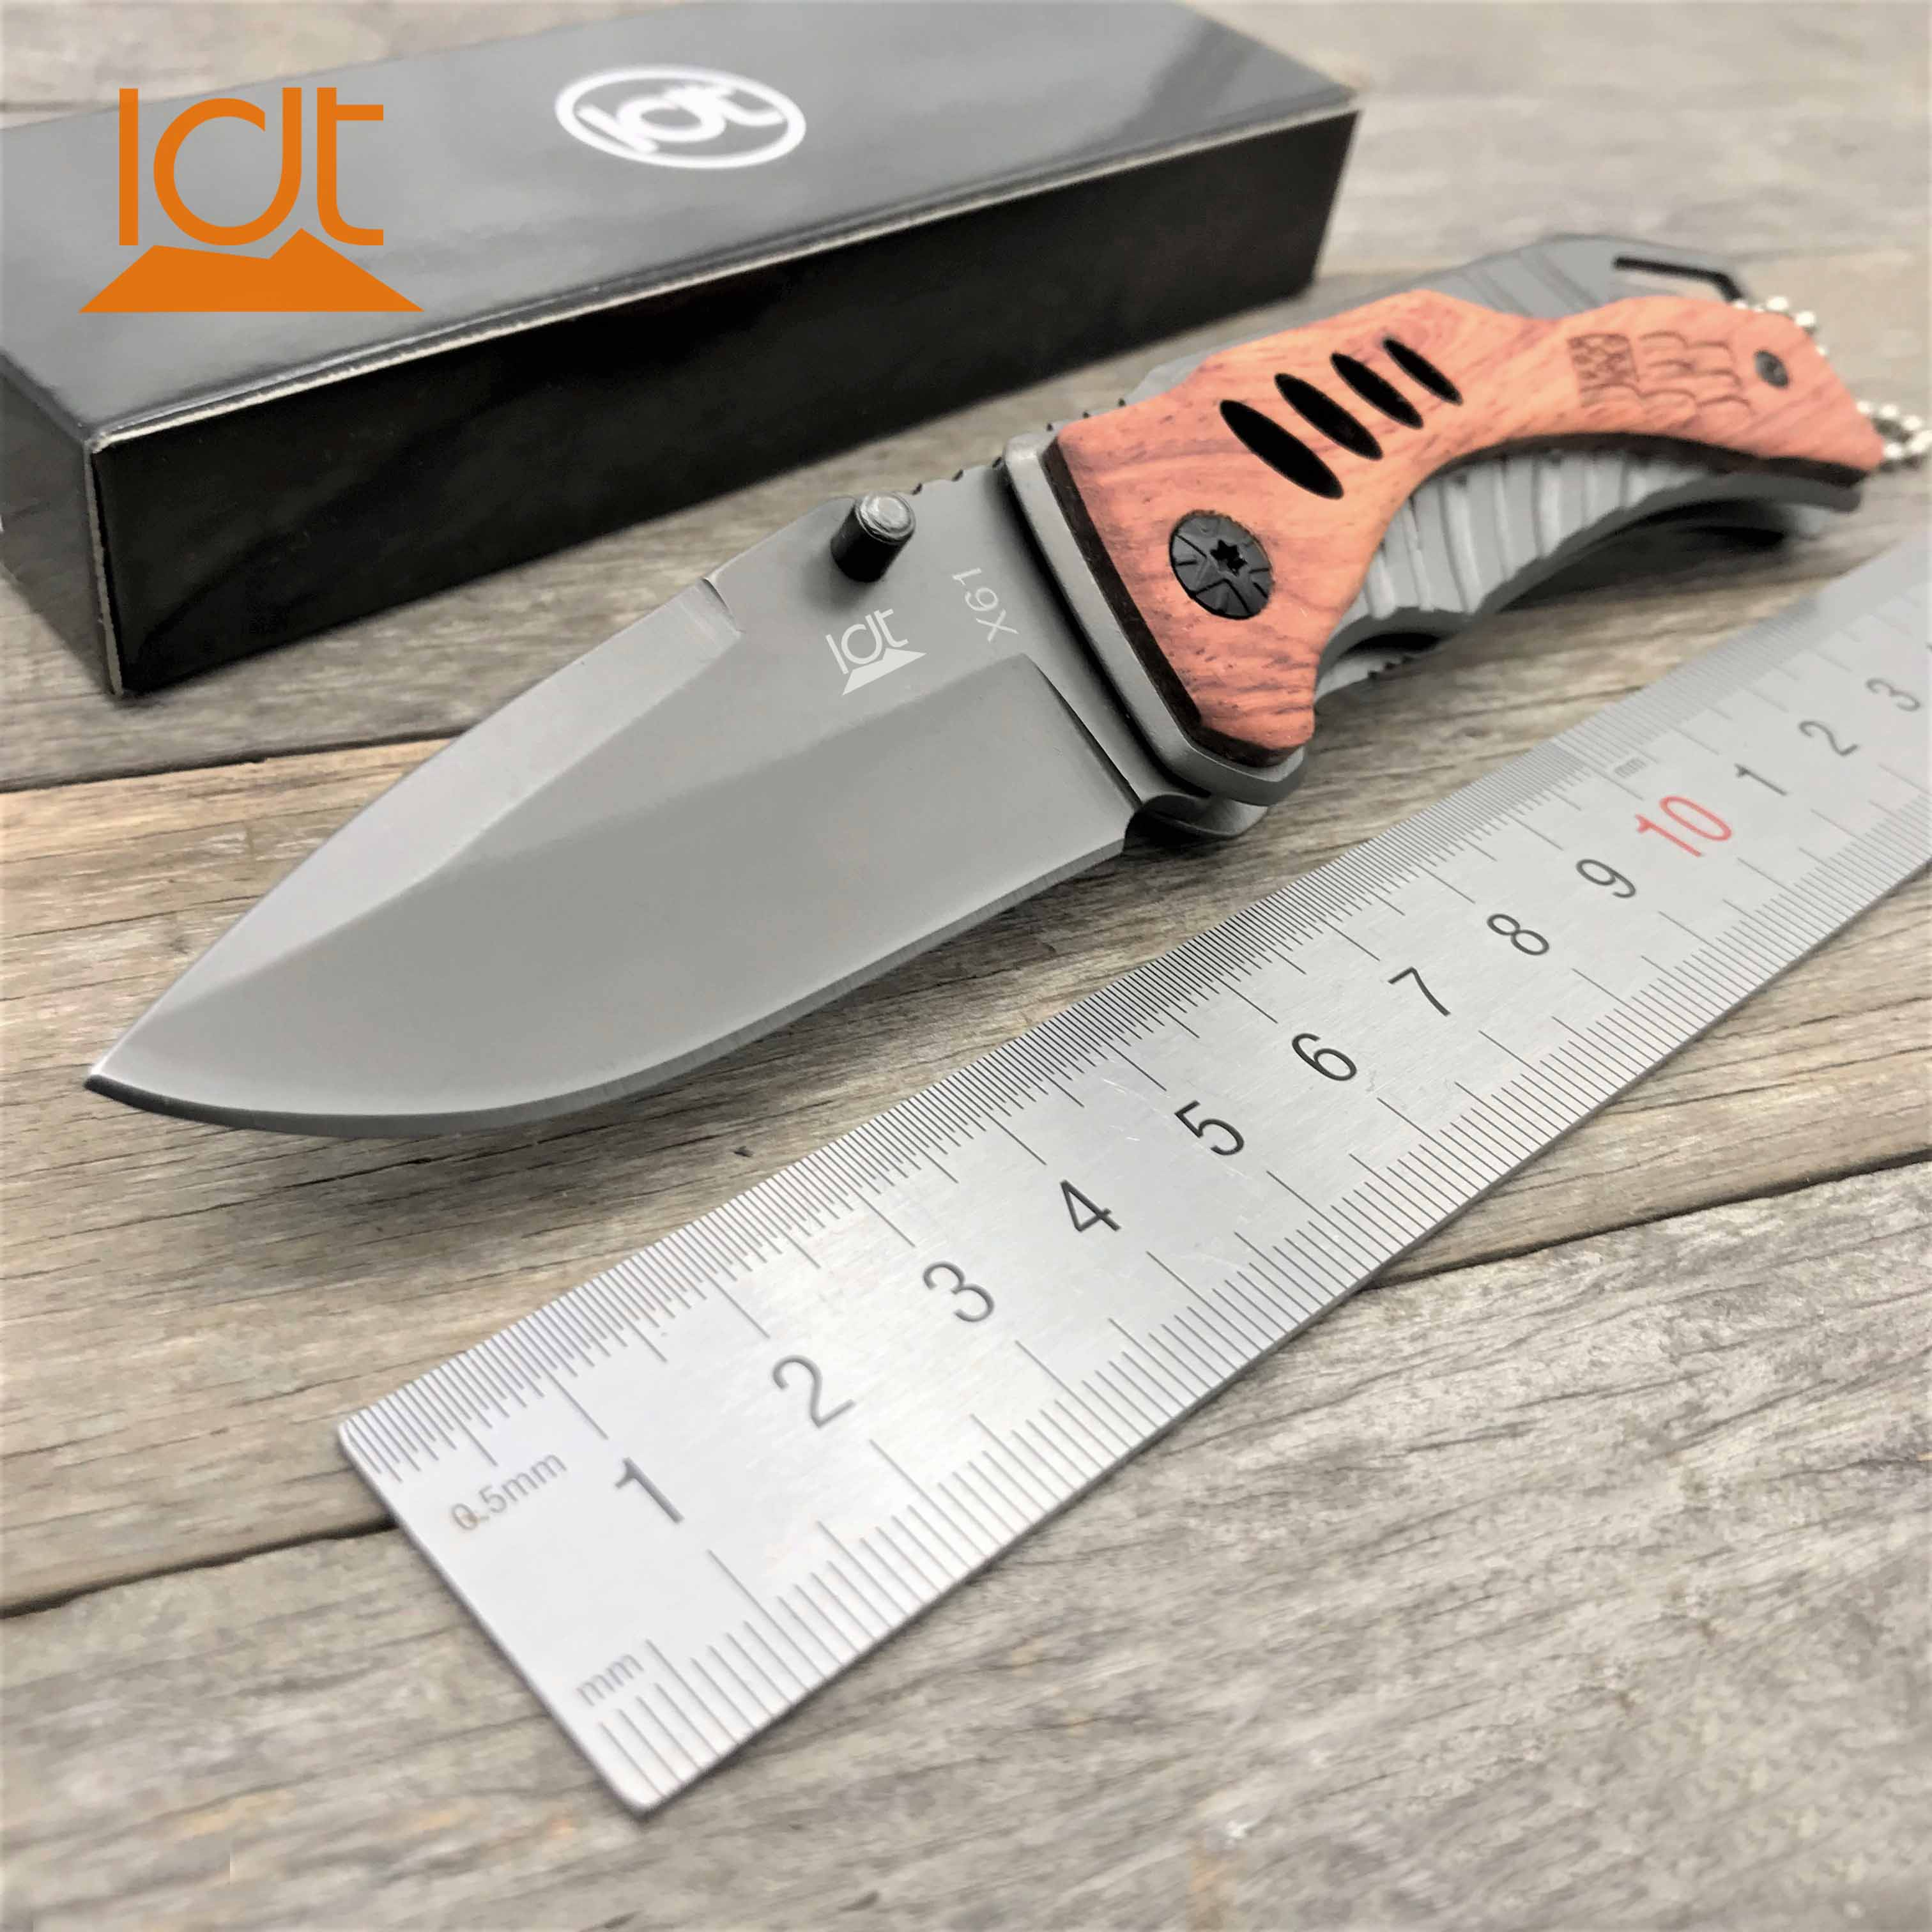 LDT X61/X70 Folding Knife 5Cr13Mov Blade Rosewood+Steel Handle Knives Camping Survival Hunting  Pocket  Tactical Knife EDC Tool